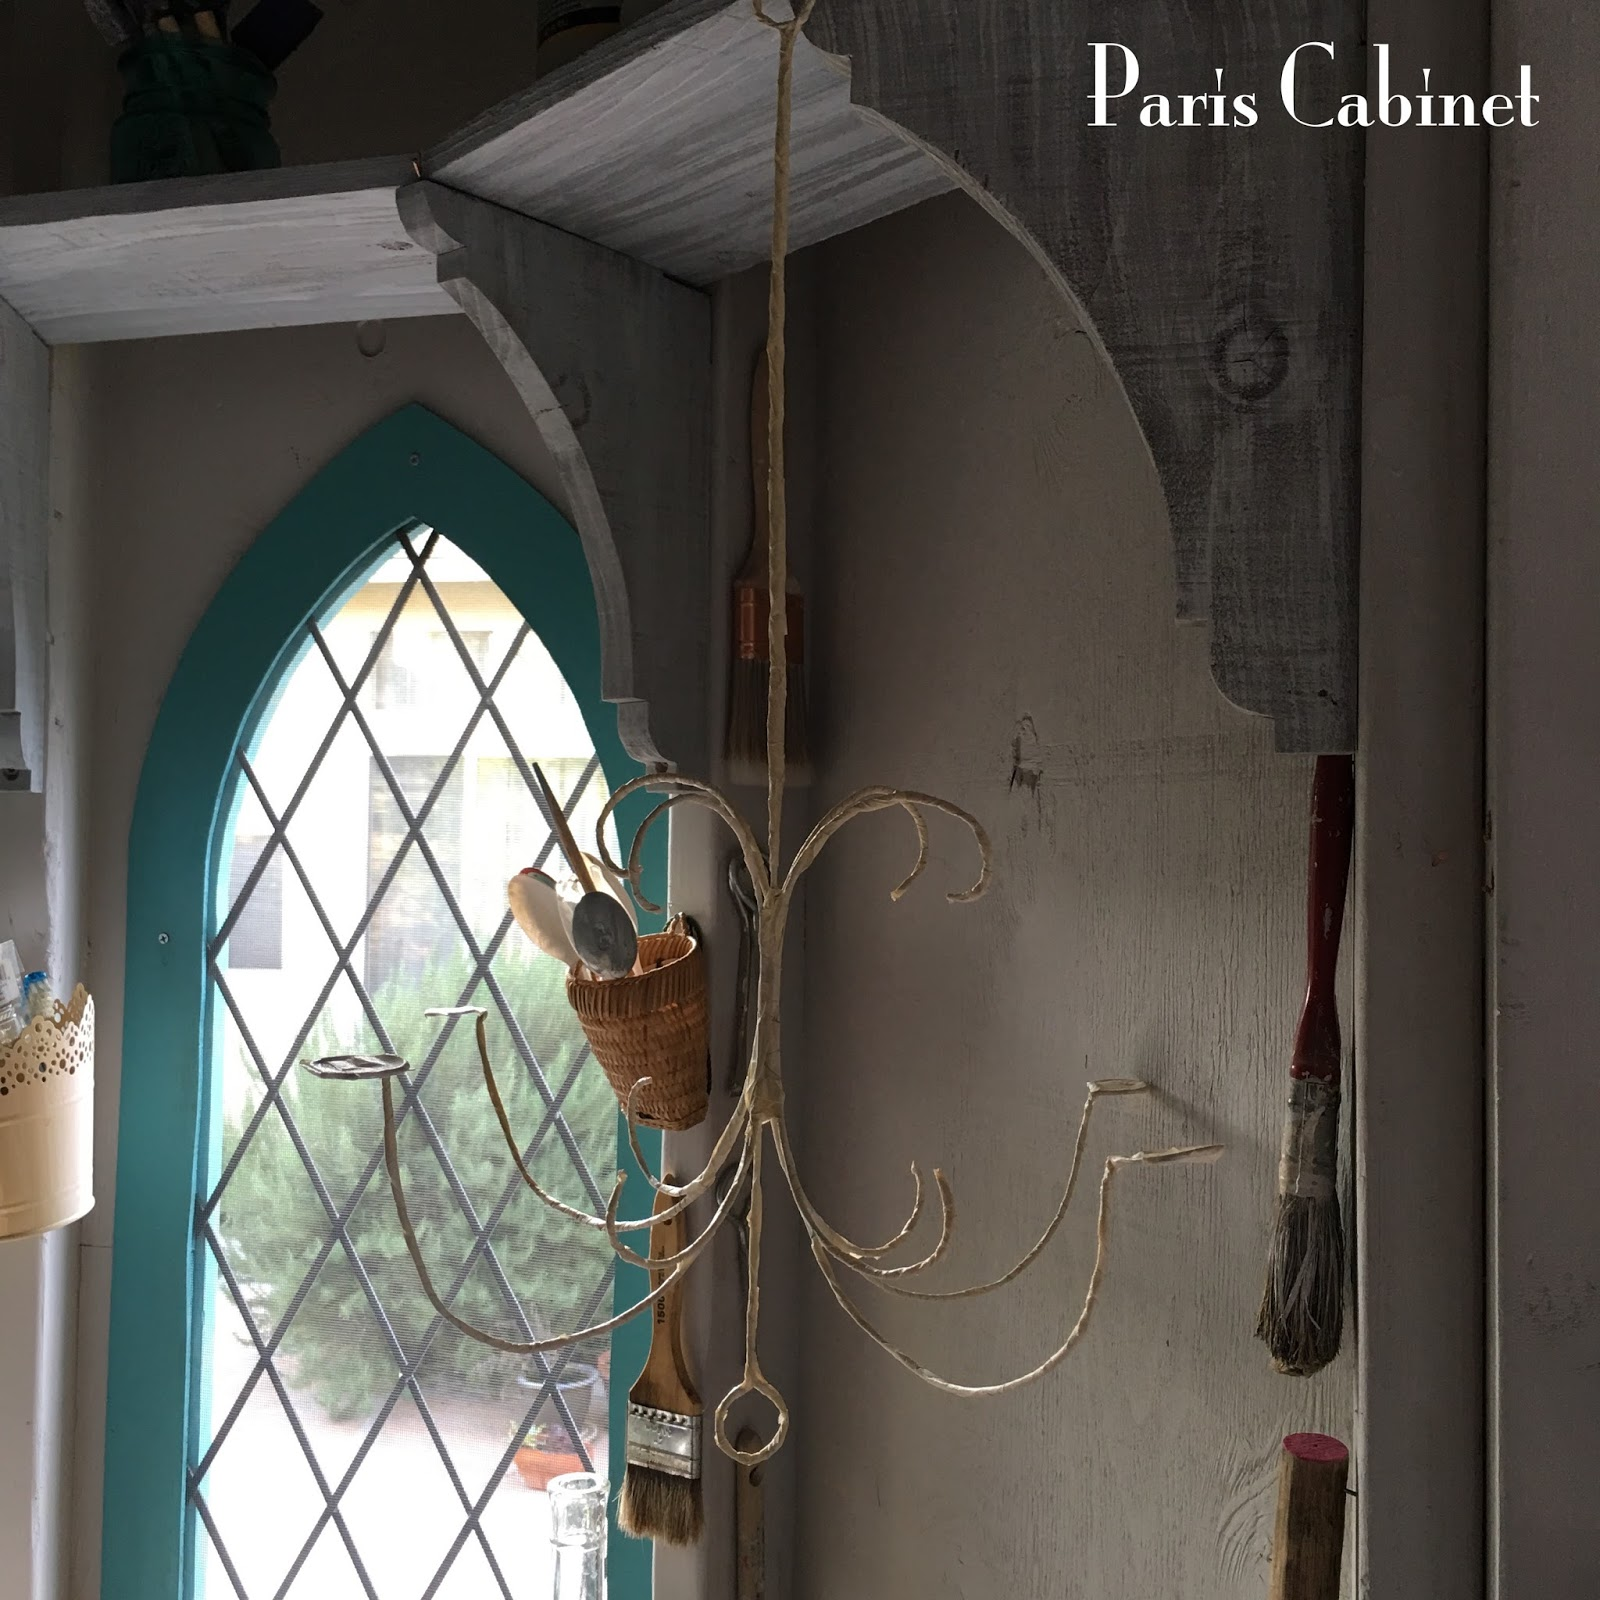 Paris cabinet paper mache chandelier for castle shed then i wrinkled some white paper and tore it into strips for the paper mache exterior wood glue will hold up better during the rainy weather mozeypictures Choice Image